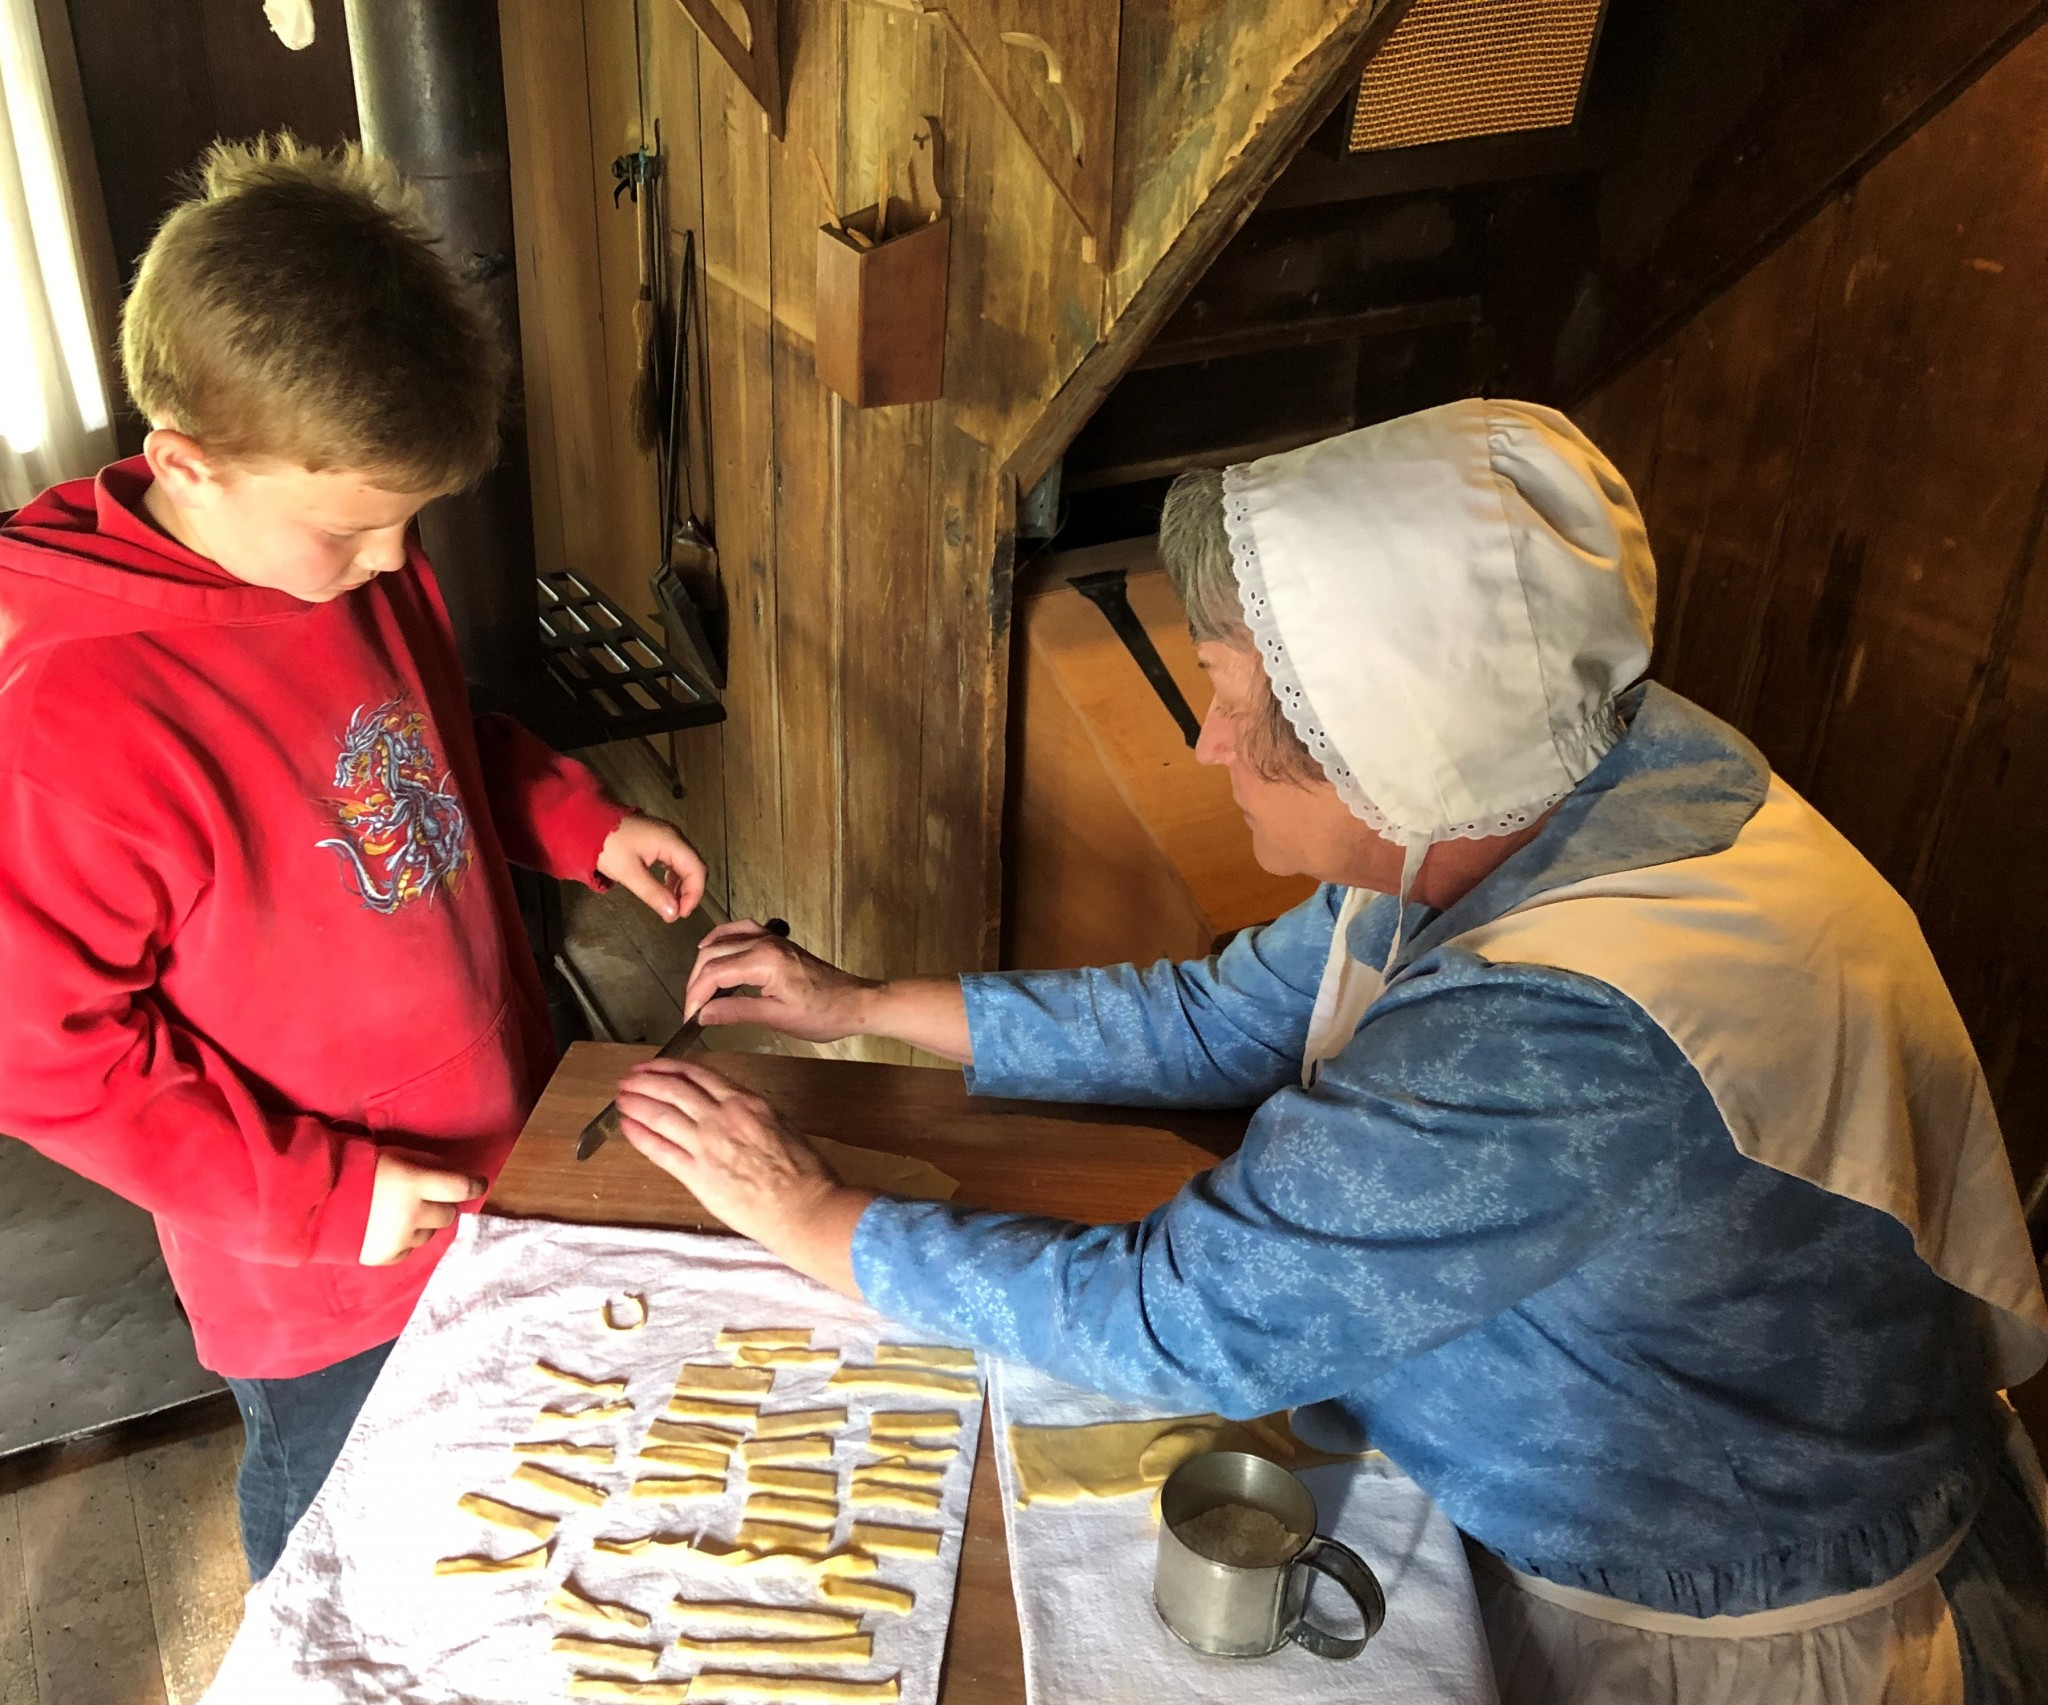 Lucas County residents are invited to enjoy free admission to Sauder Village on Saturday, July 20. (Submitted photo)